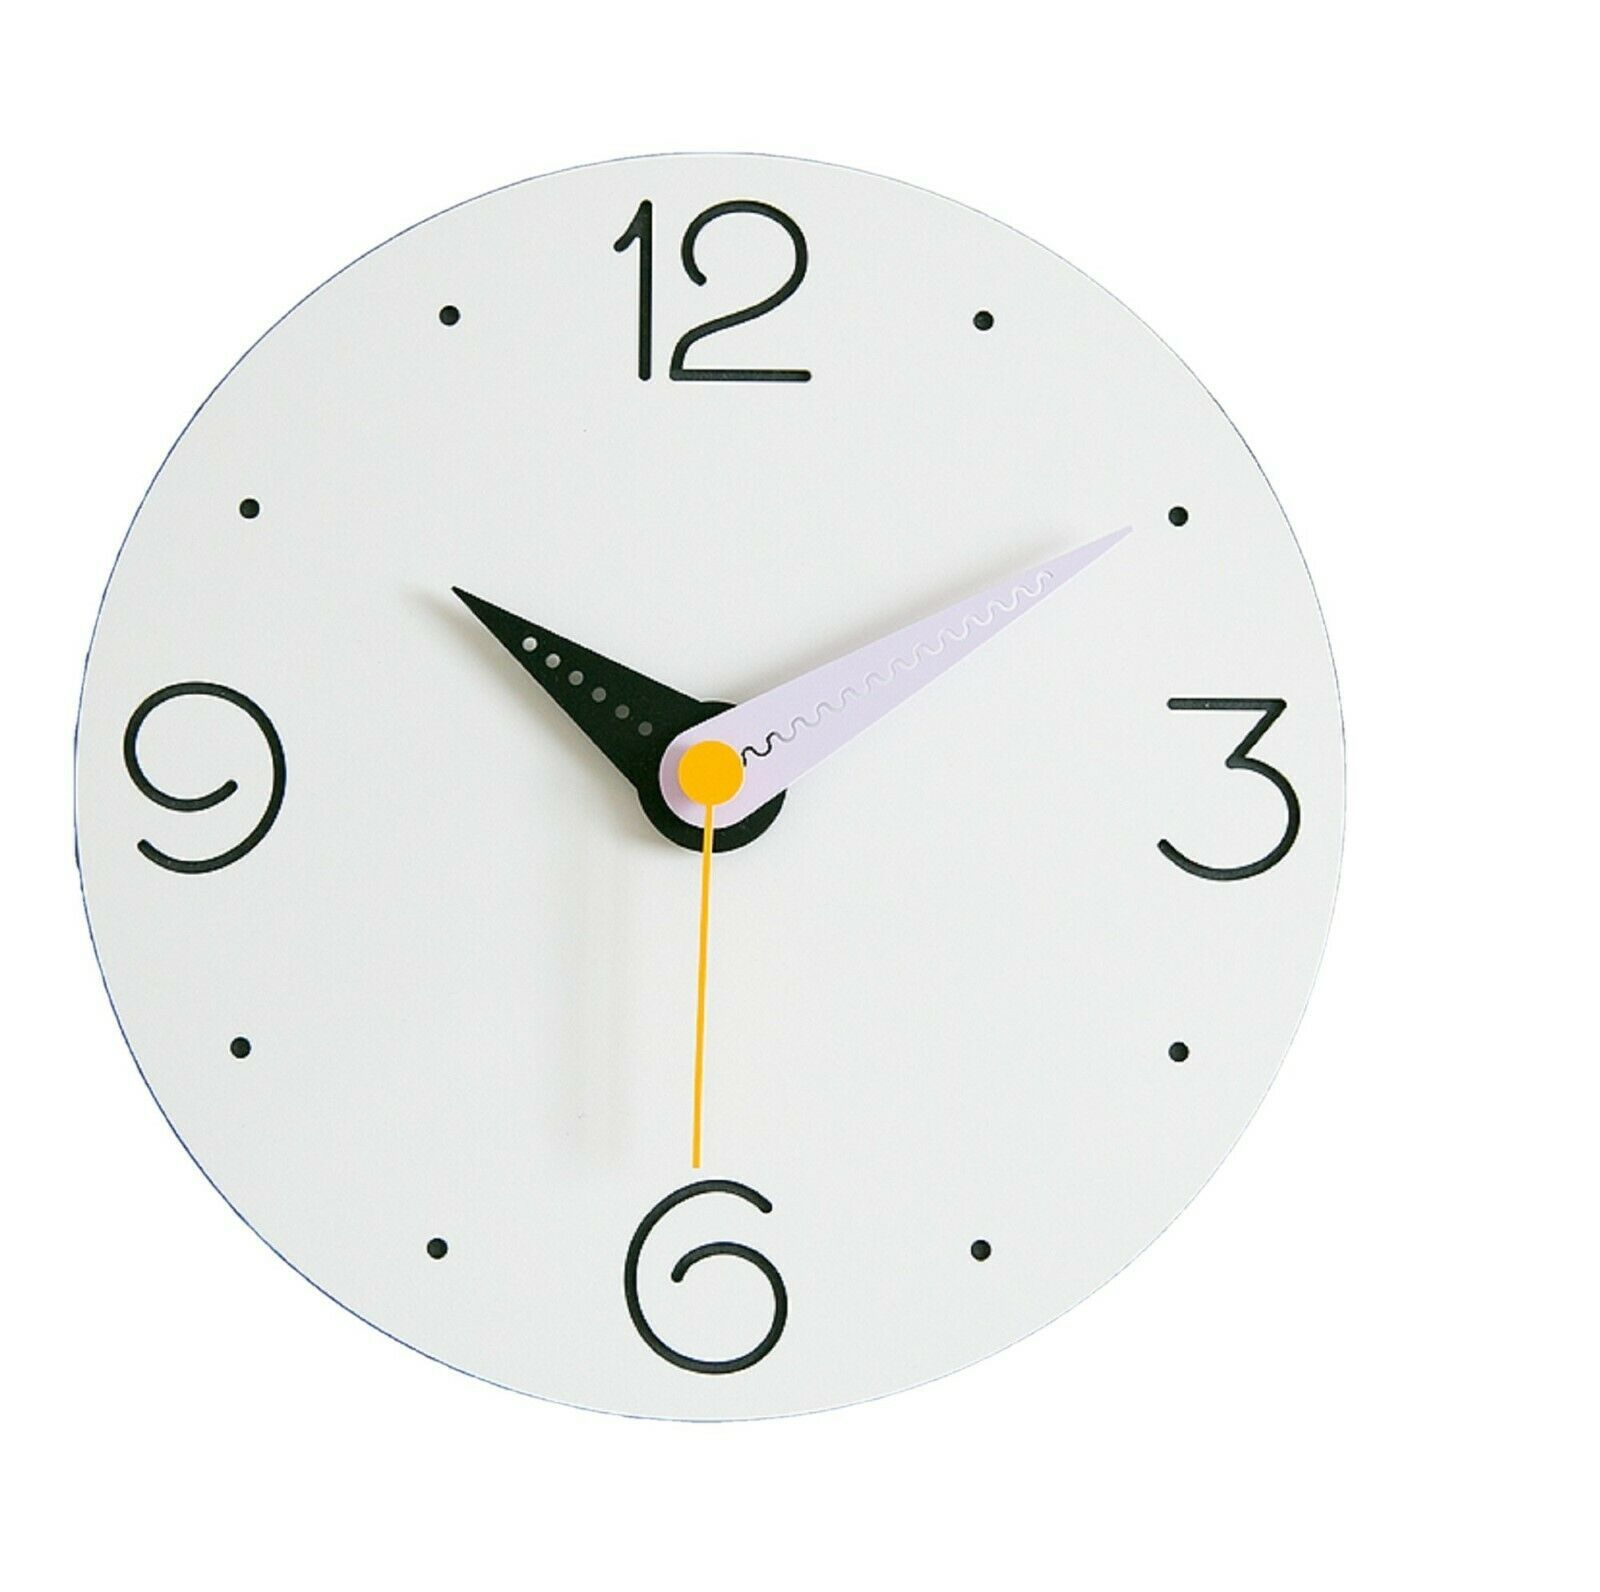 Moro Design Point Line Wall Clock non Ticking Silent Modern Clock (Purple)